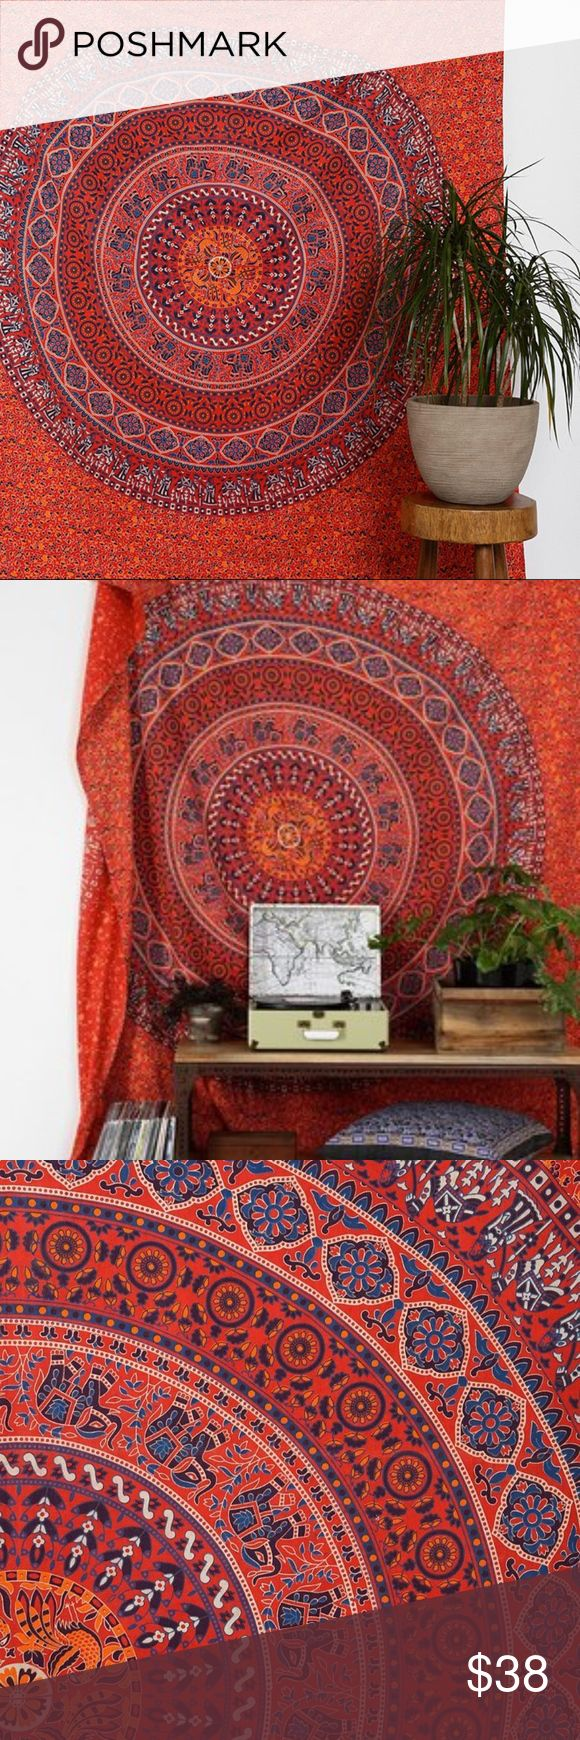 Magical Thinking Red Medallion Tapestry Urban Outfitters Magical Thinking Red Medallion Tapestry. Like new. Was used in college to hang on a wall. Needs a new home. Urban Outfitters Accessories